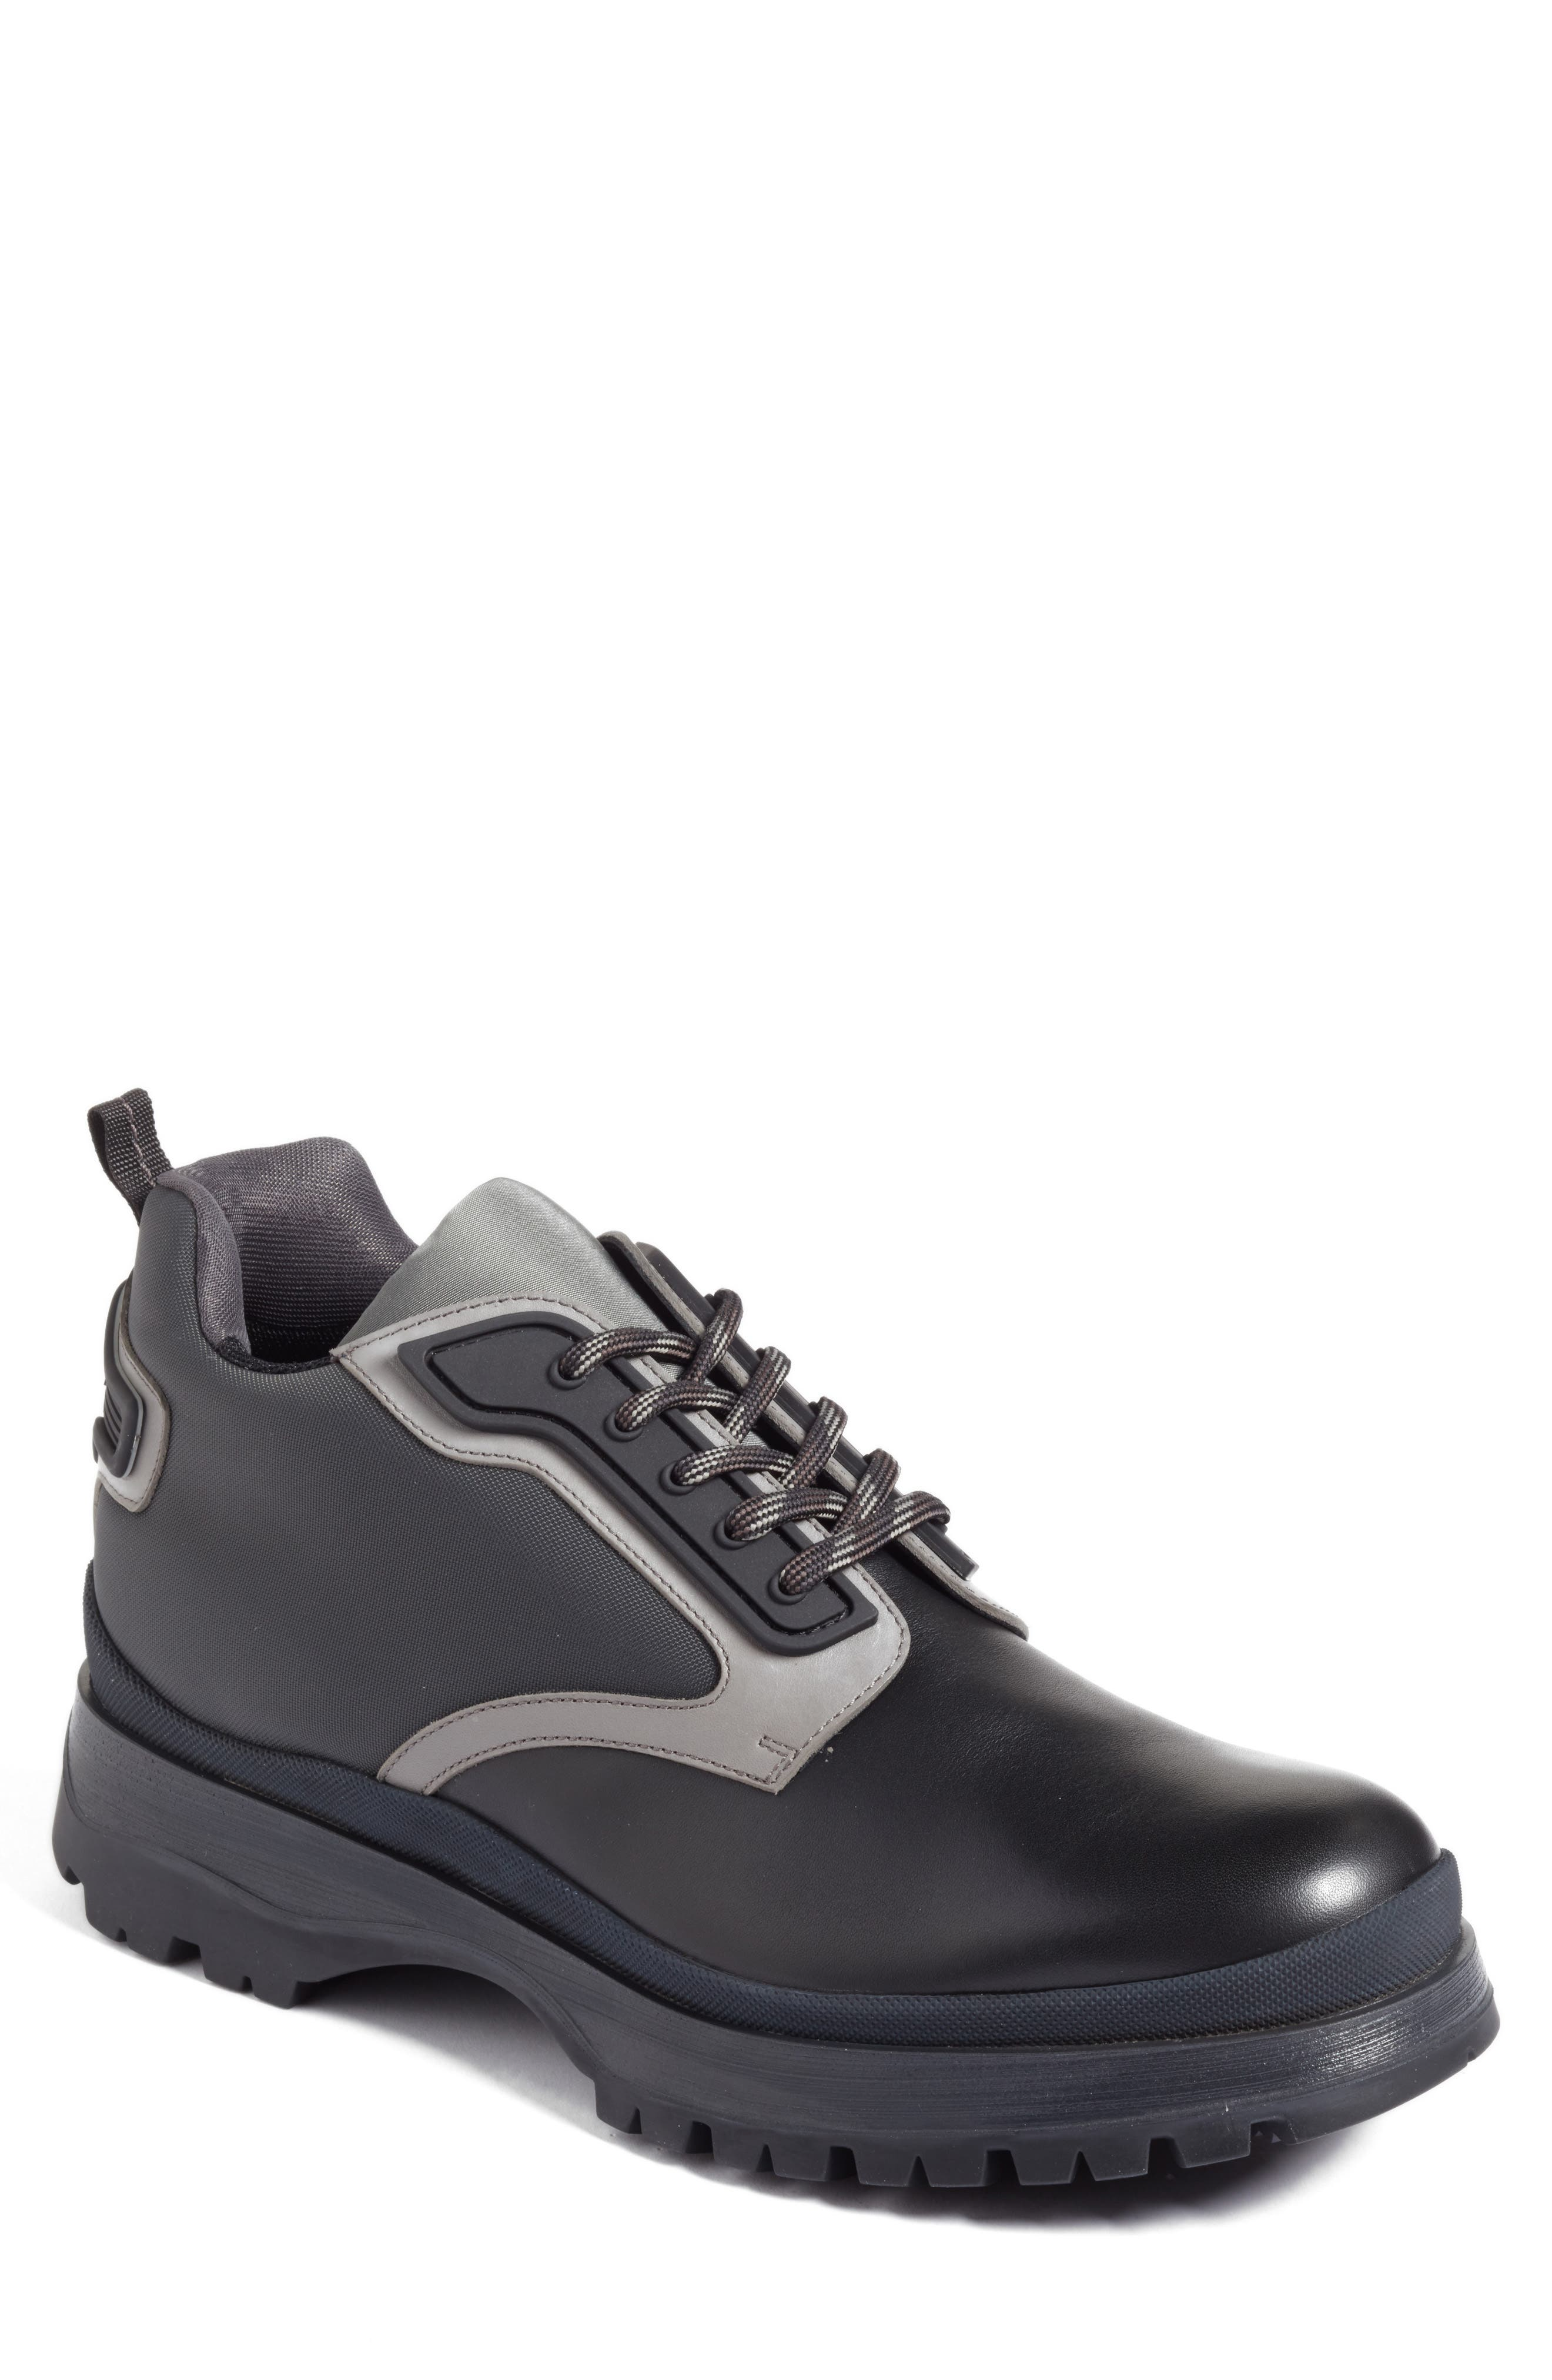 Prada Linea Rossa Tech Sneaker Boot (Men)